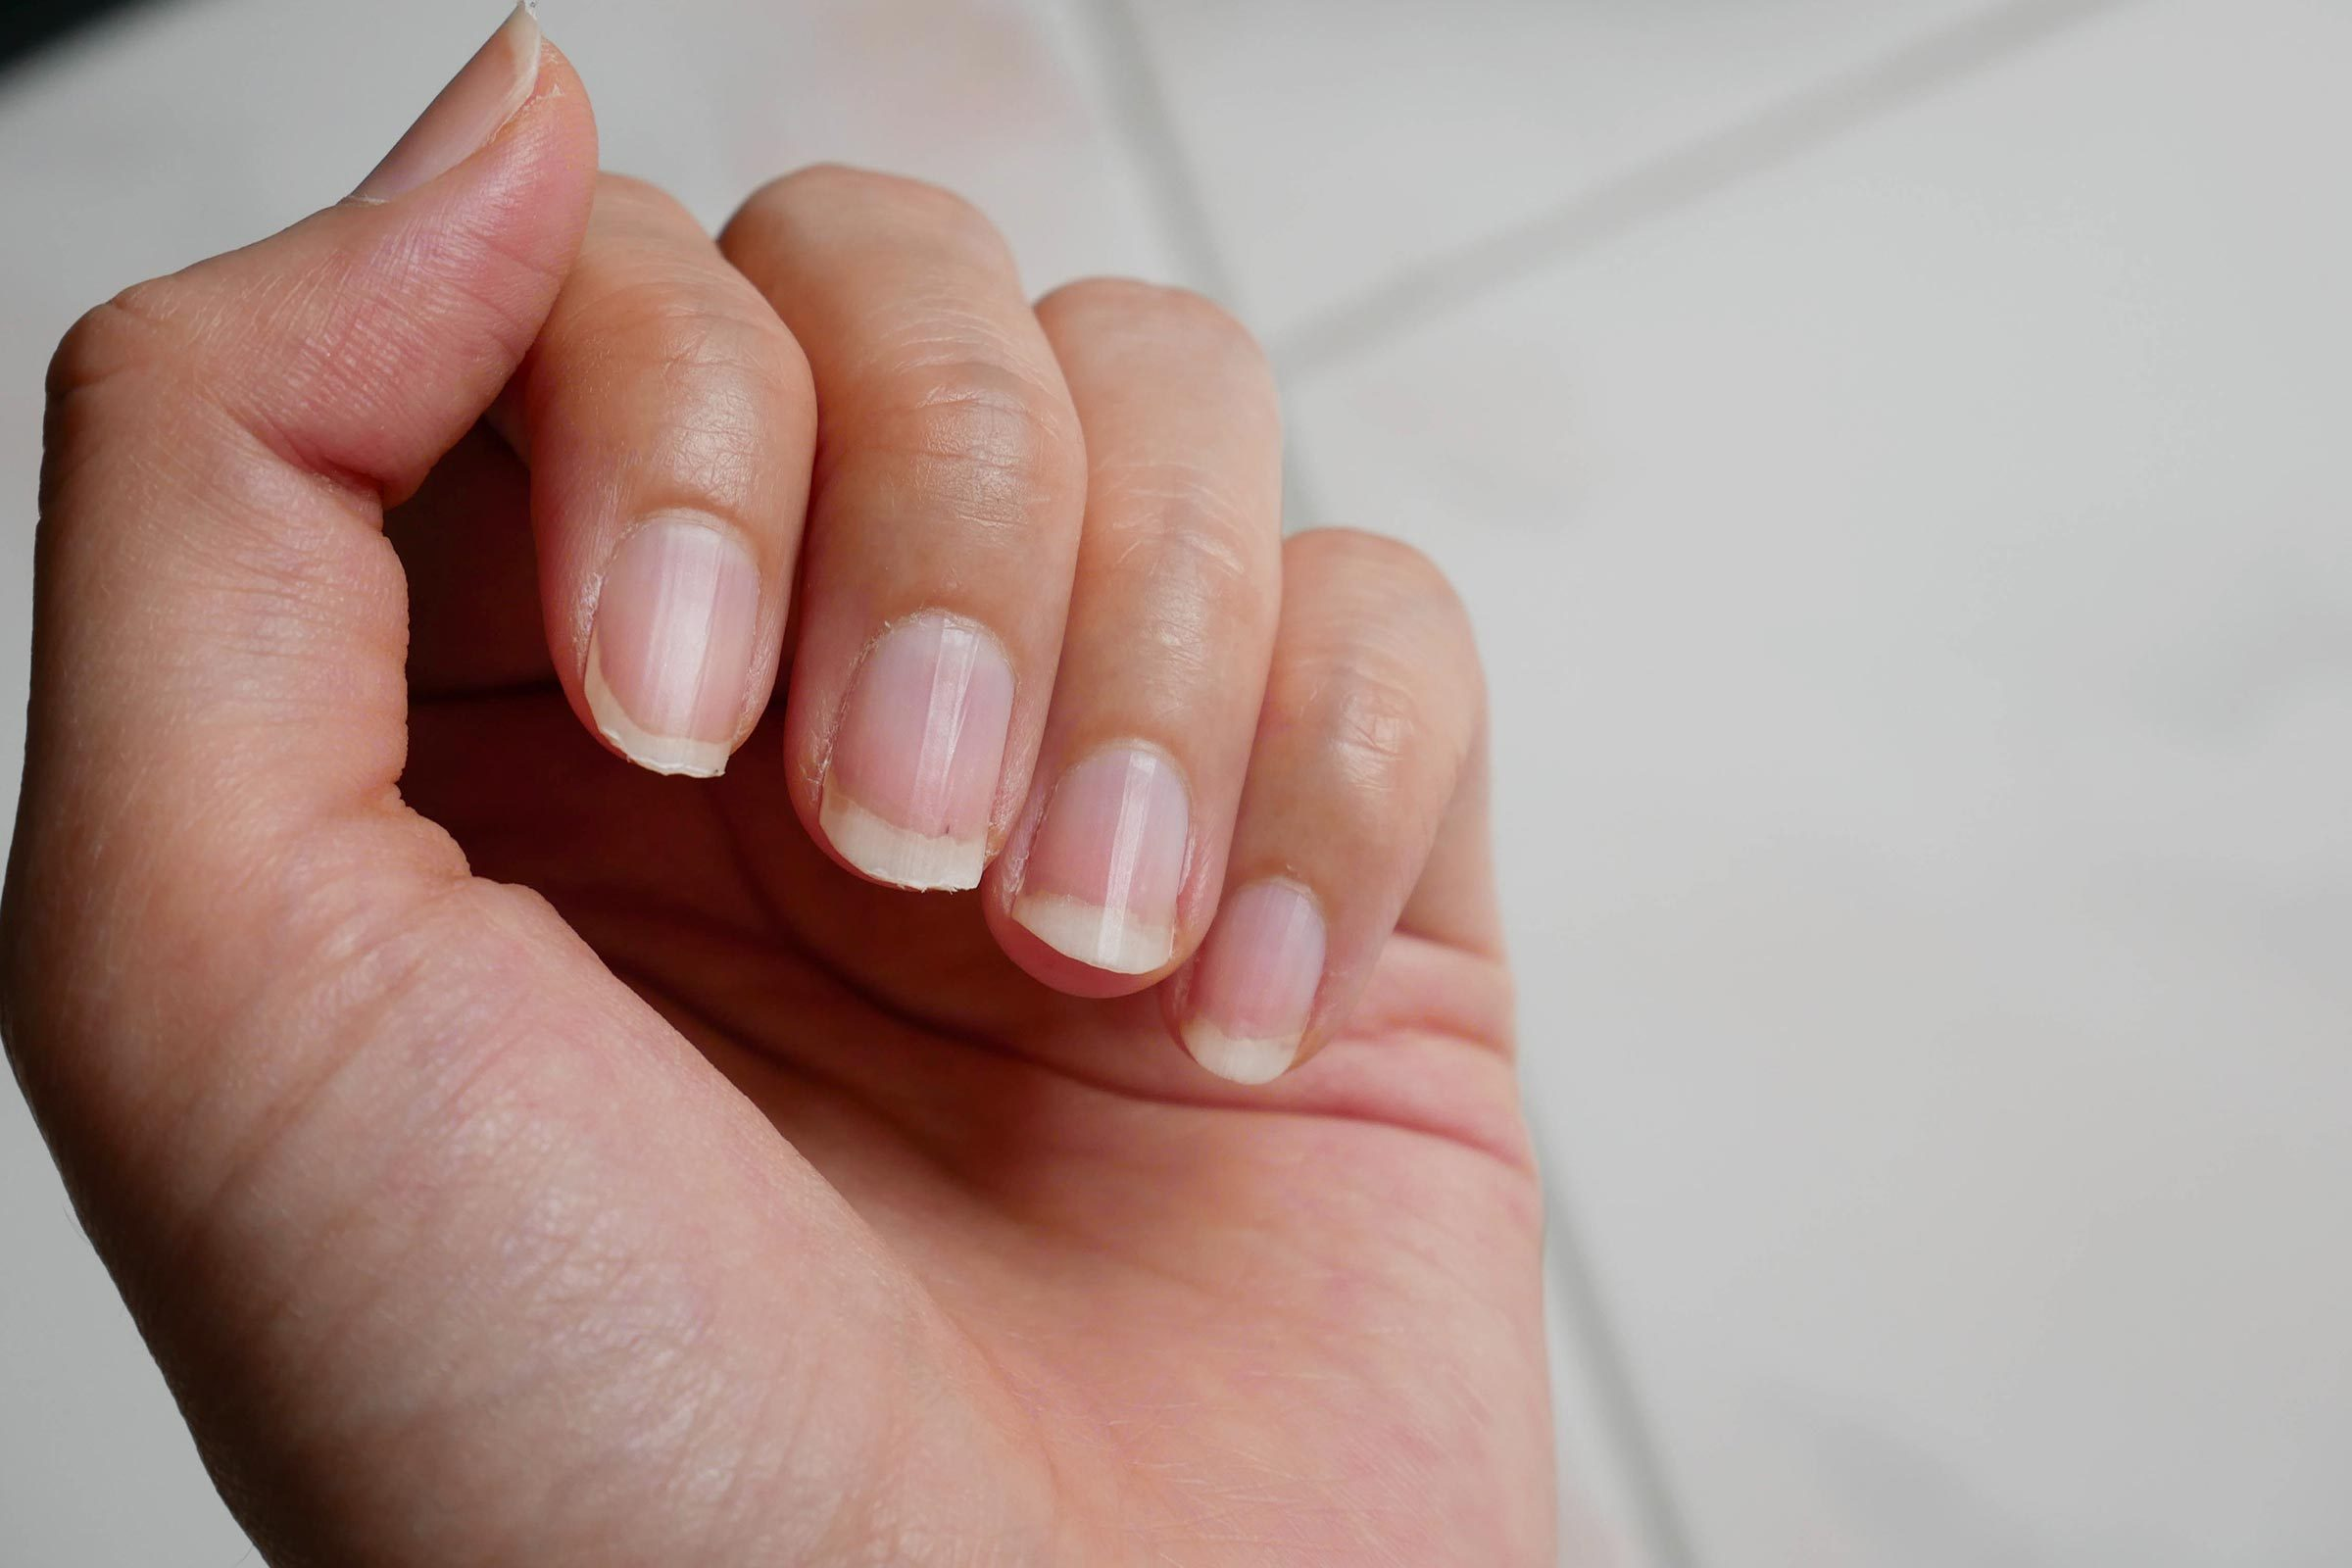 a woman's hand, with the palm and nails visible